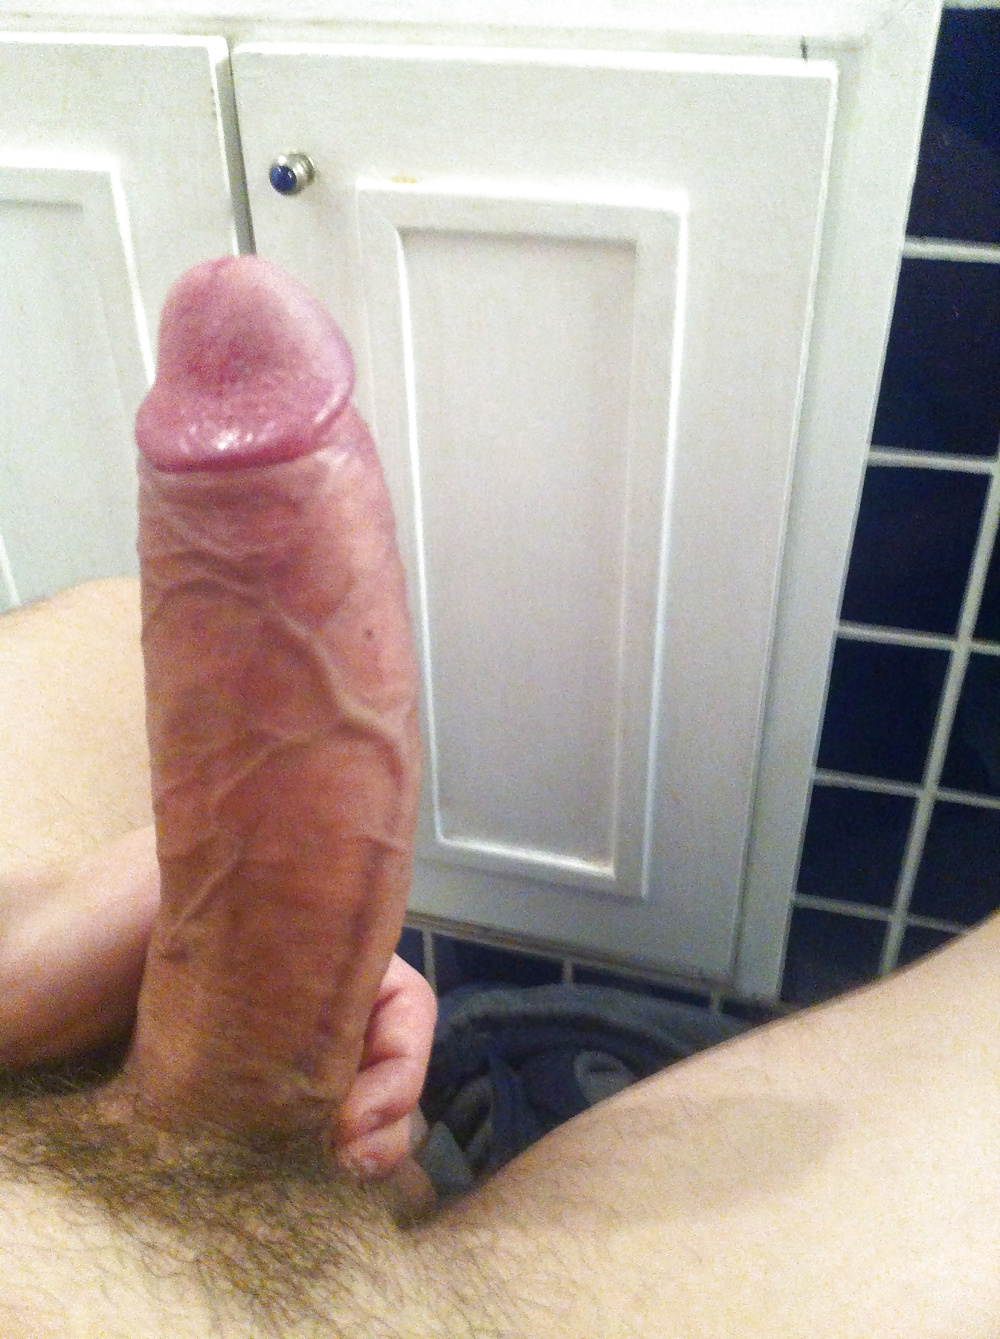 Incredible thick dick uploaded amateur homemade photos